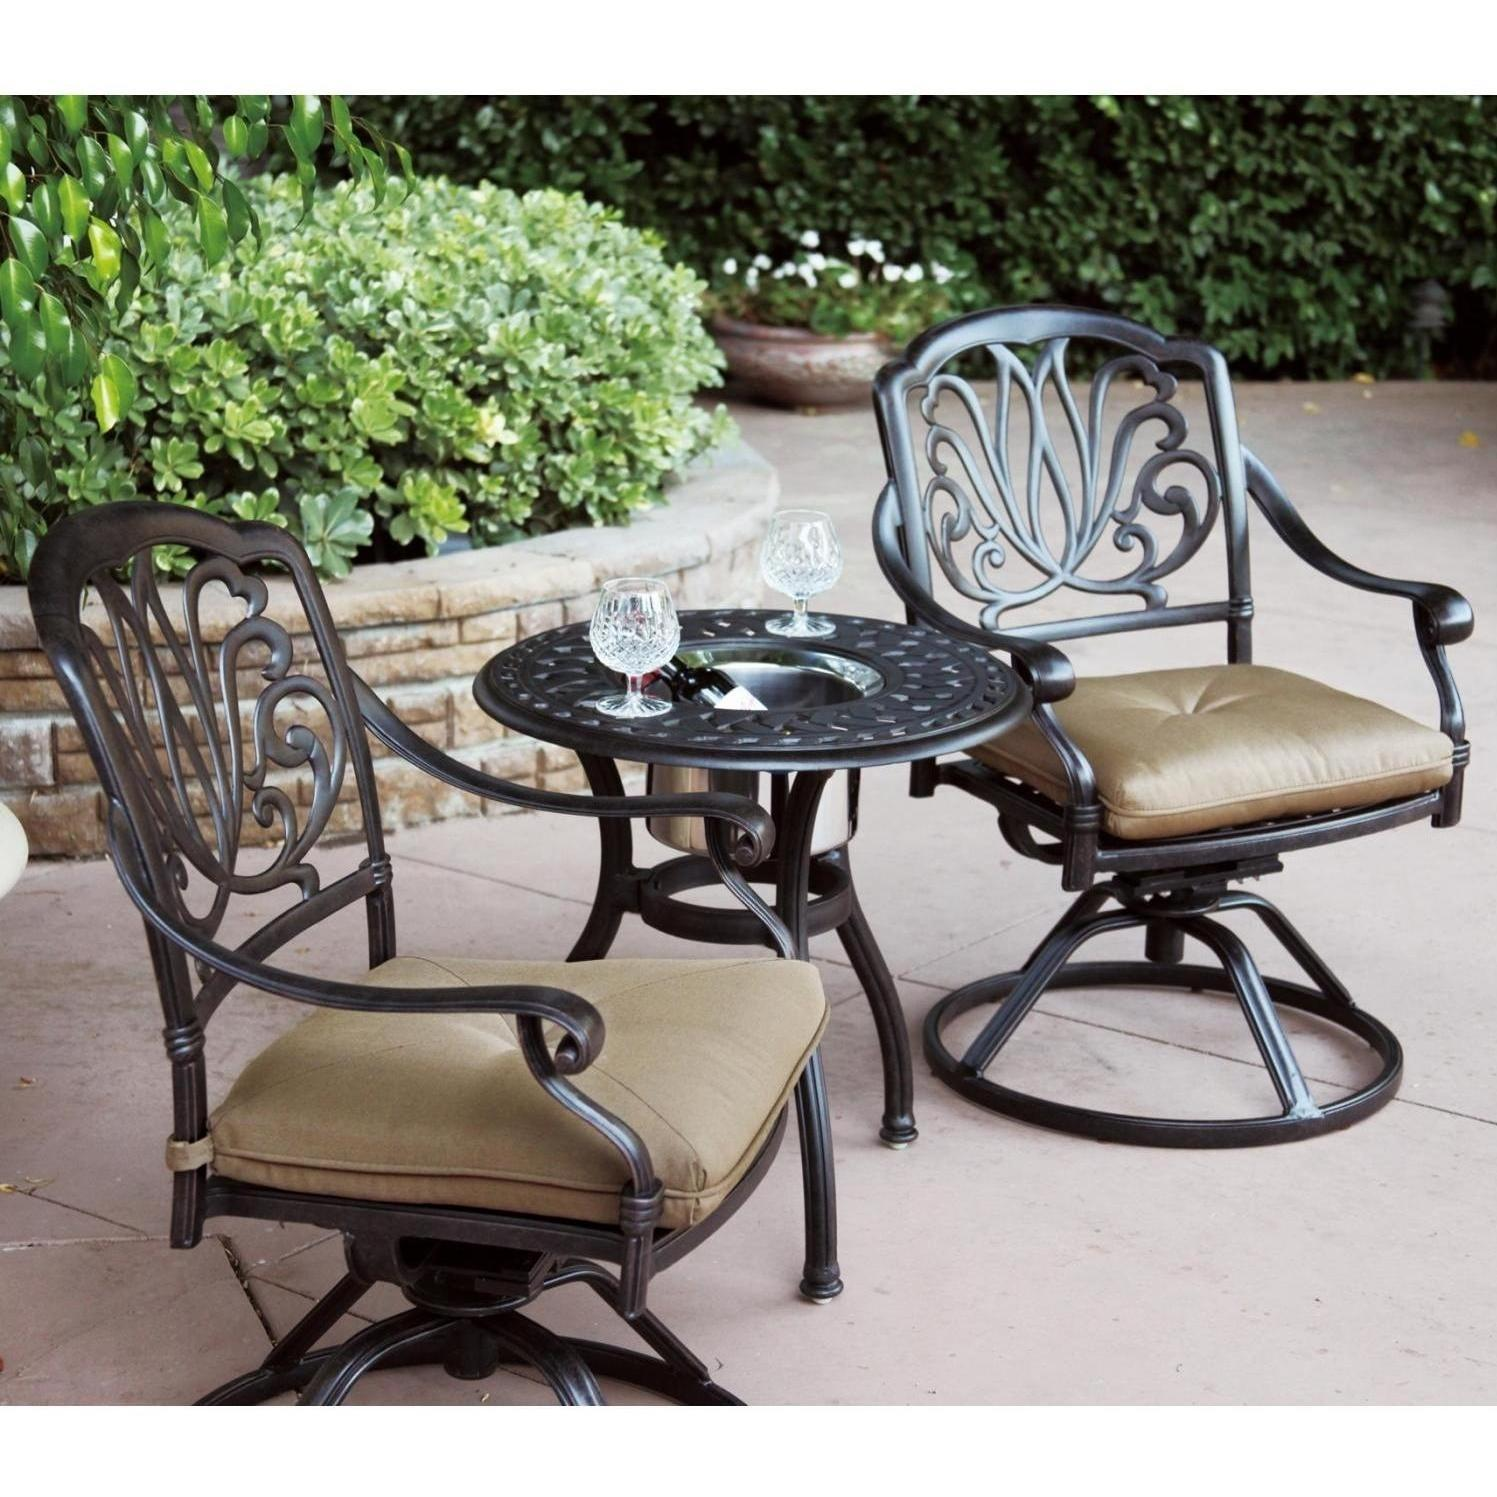 Patio Furniture Bistro Set Cast Aluminum Swivel Rocker 3pc ...